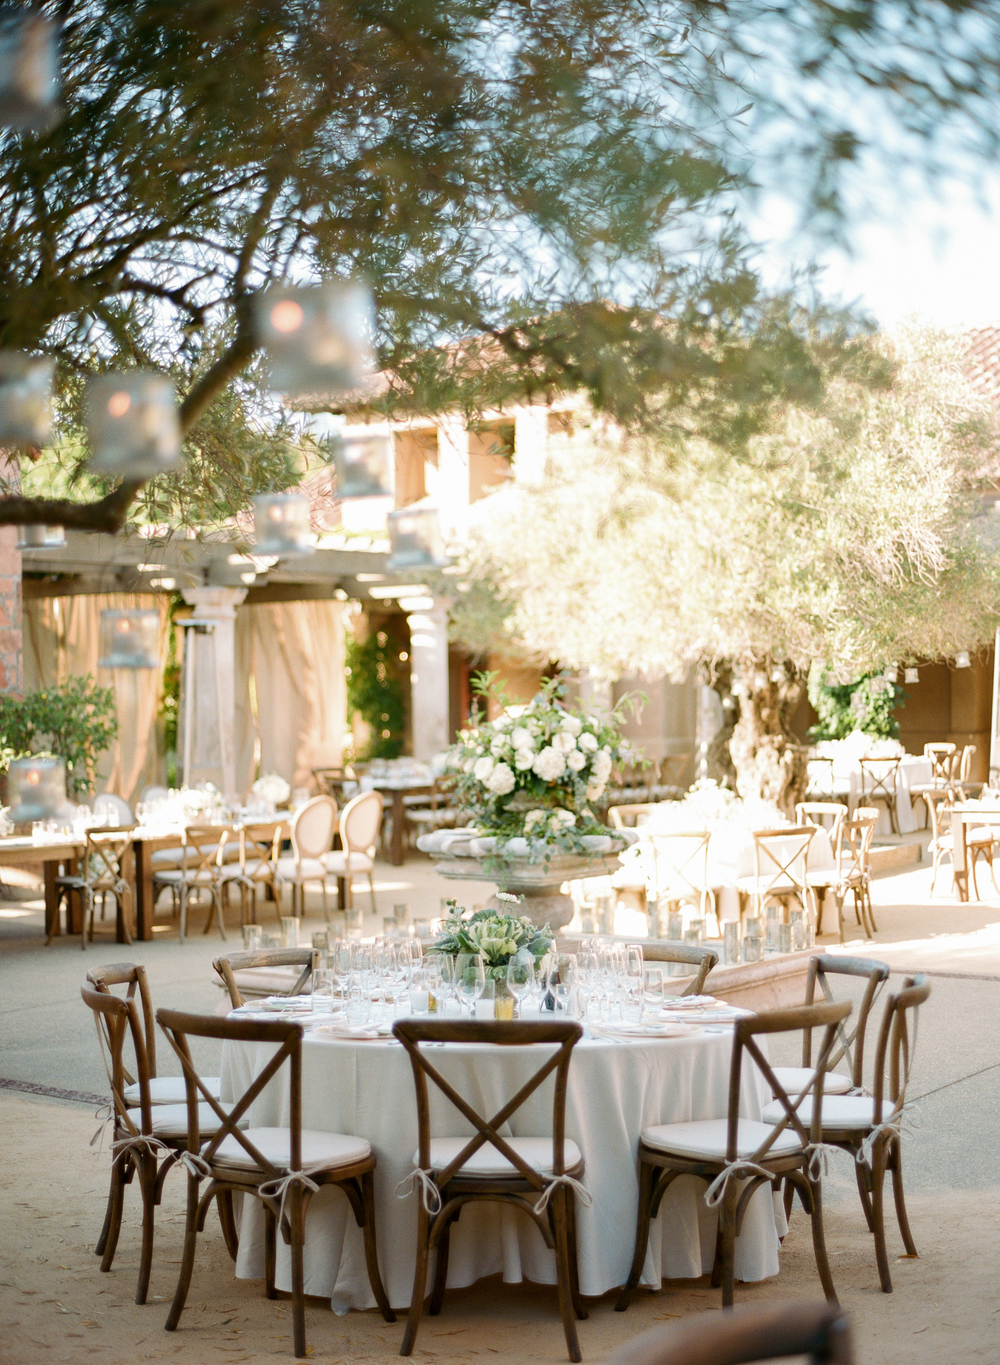 Votive candles hang from olive branches in the courtyard, a fountain sits in the center of the elegantly arranged reception tables; photo by Sylvie Gil